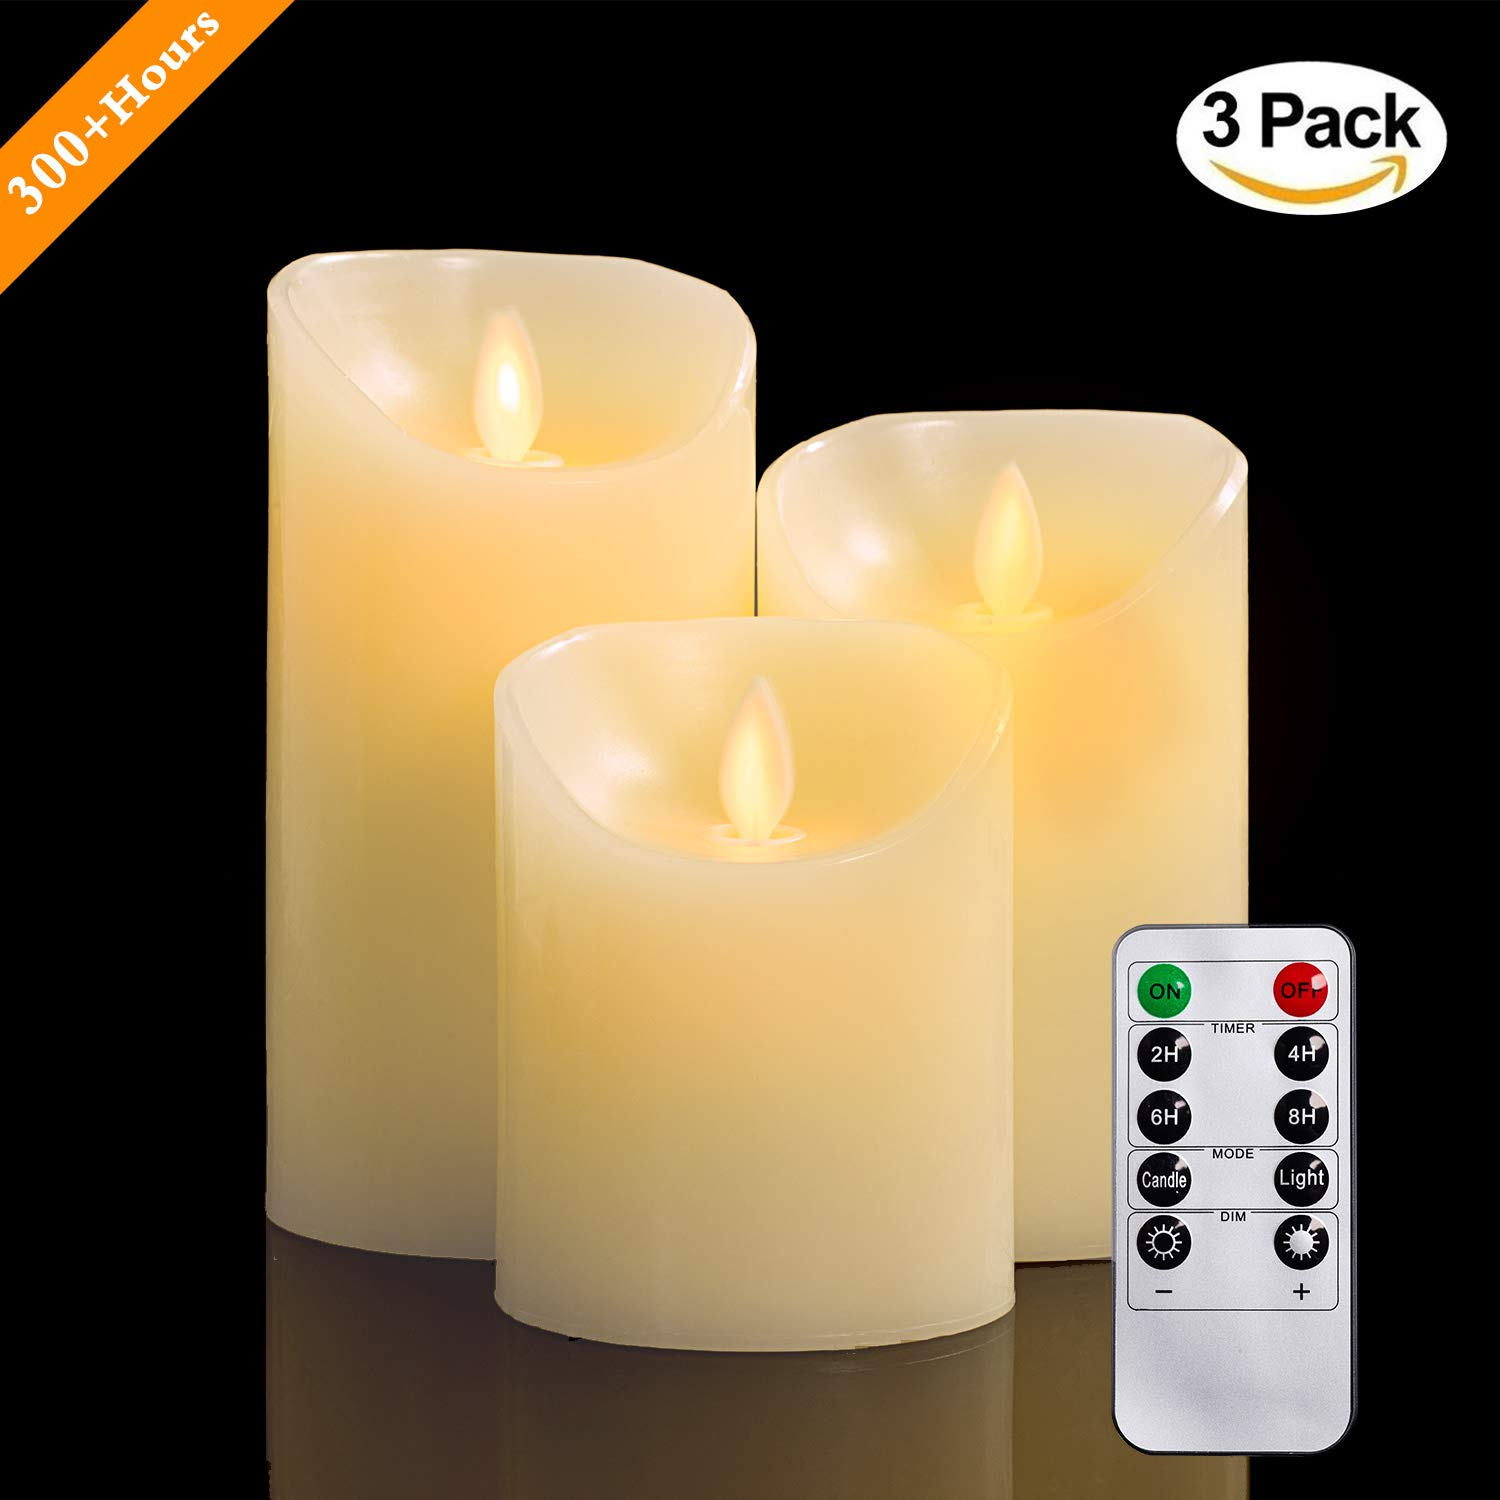 Flameless Candles, 4'' 5'' 6'' Set of 3 Real Wax Not Plastic Pillars, Include Realistic Dancing LED Flames and 10-key Remote Control with 2/4/6/8-hours Timer Function, 300+ Hours-YIWER (3, Ivory)